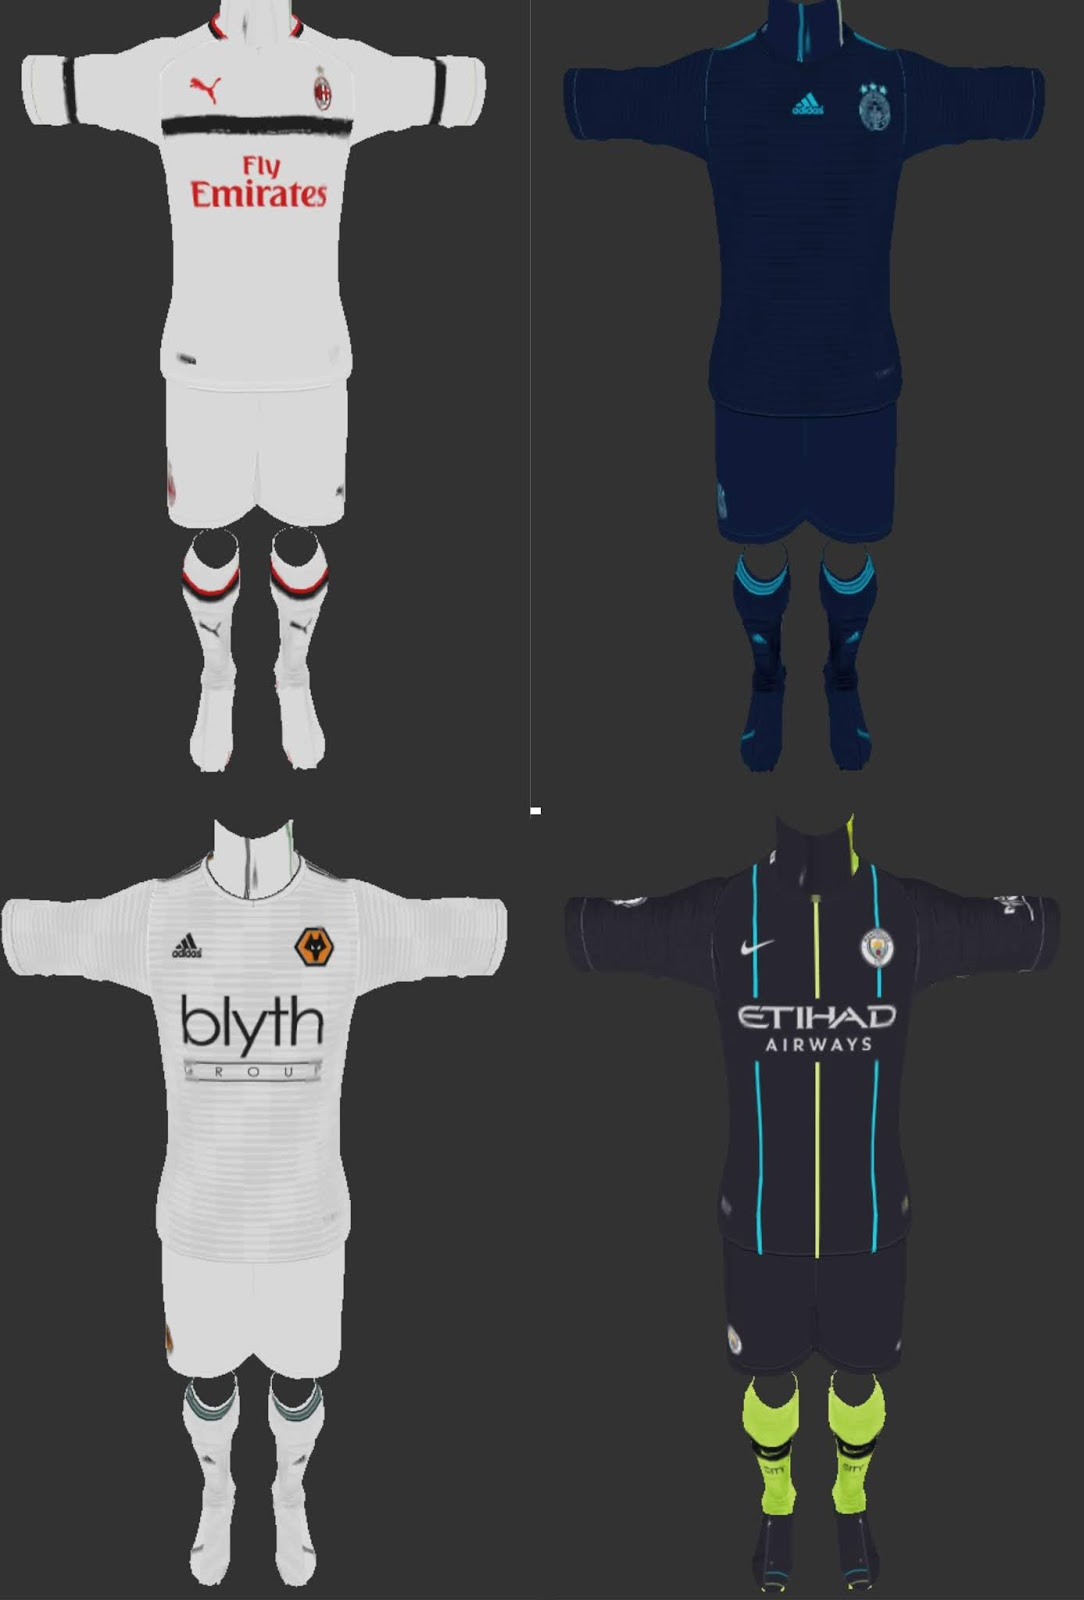 PES 2013 Kitpack Update 17 June 2018 by Auvergne81